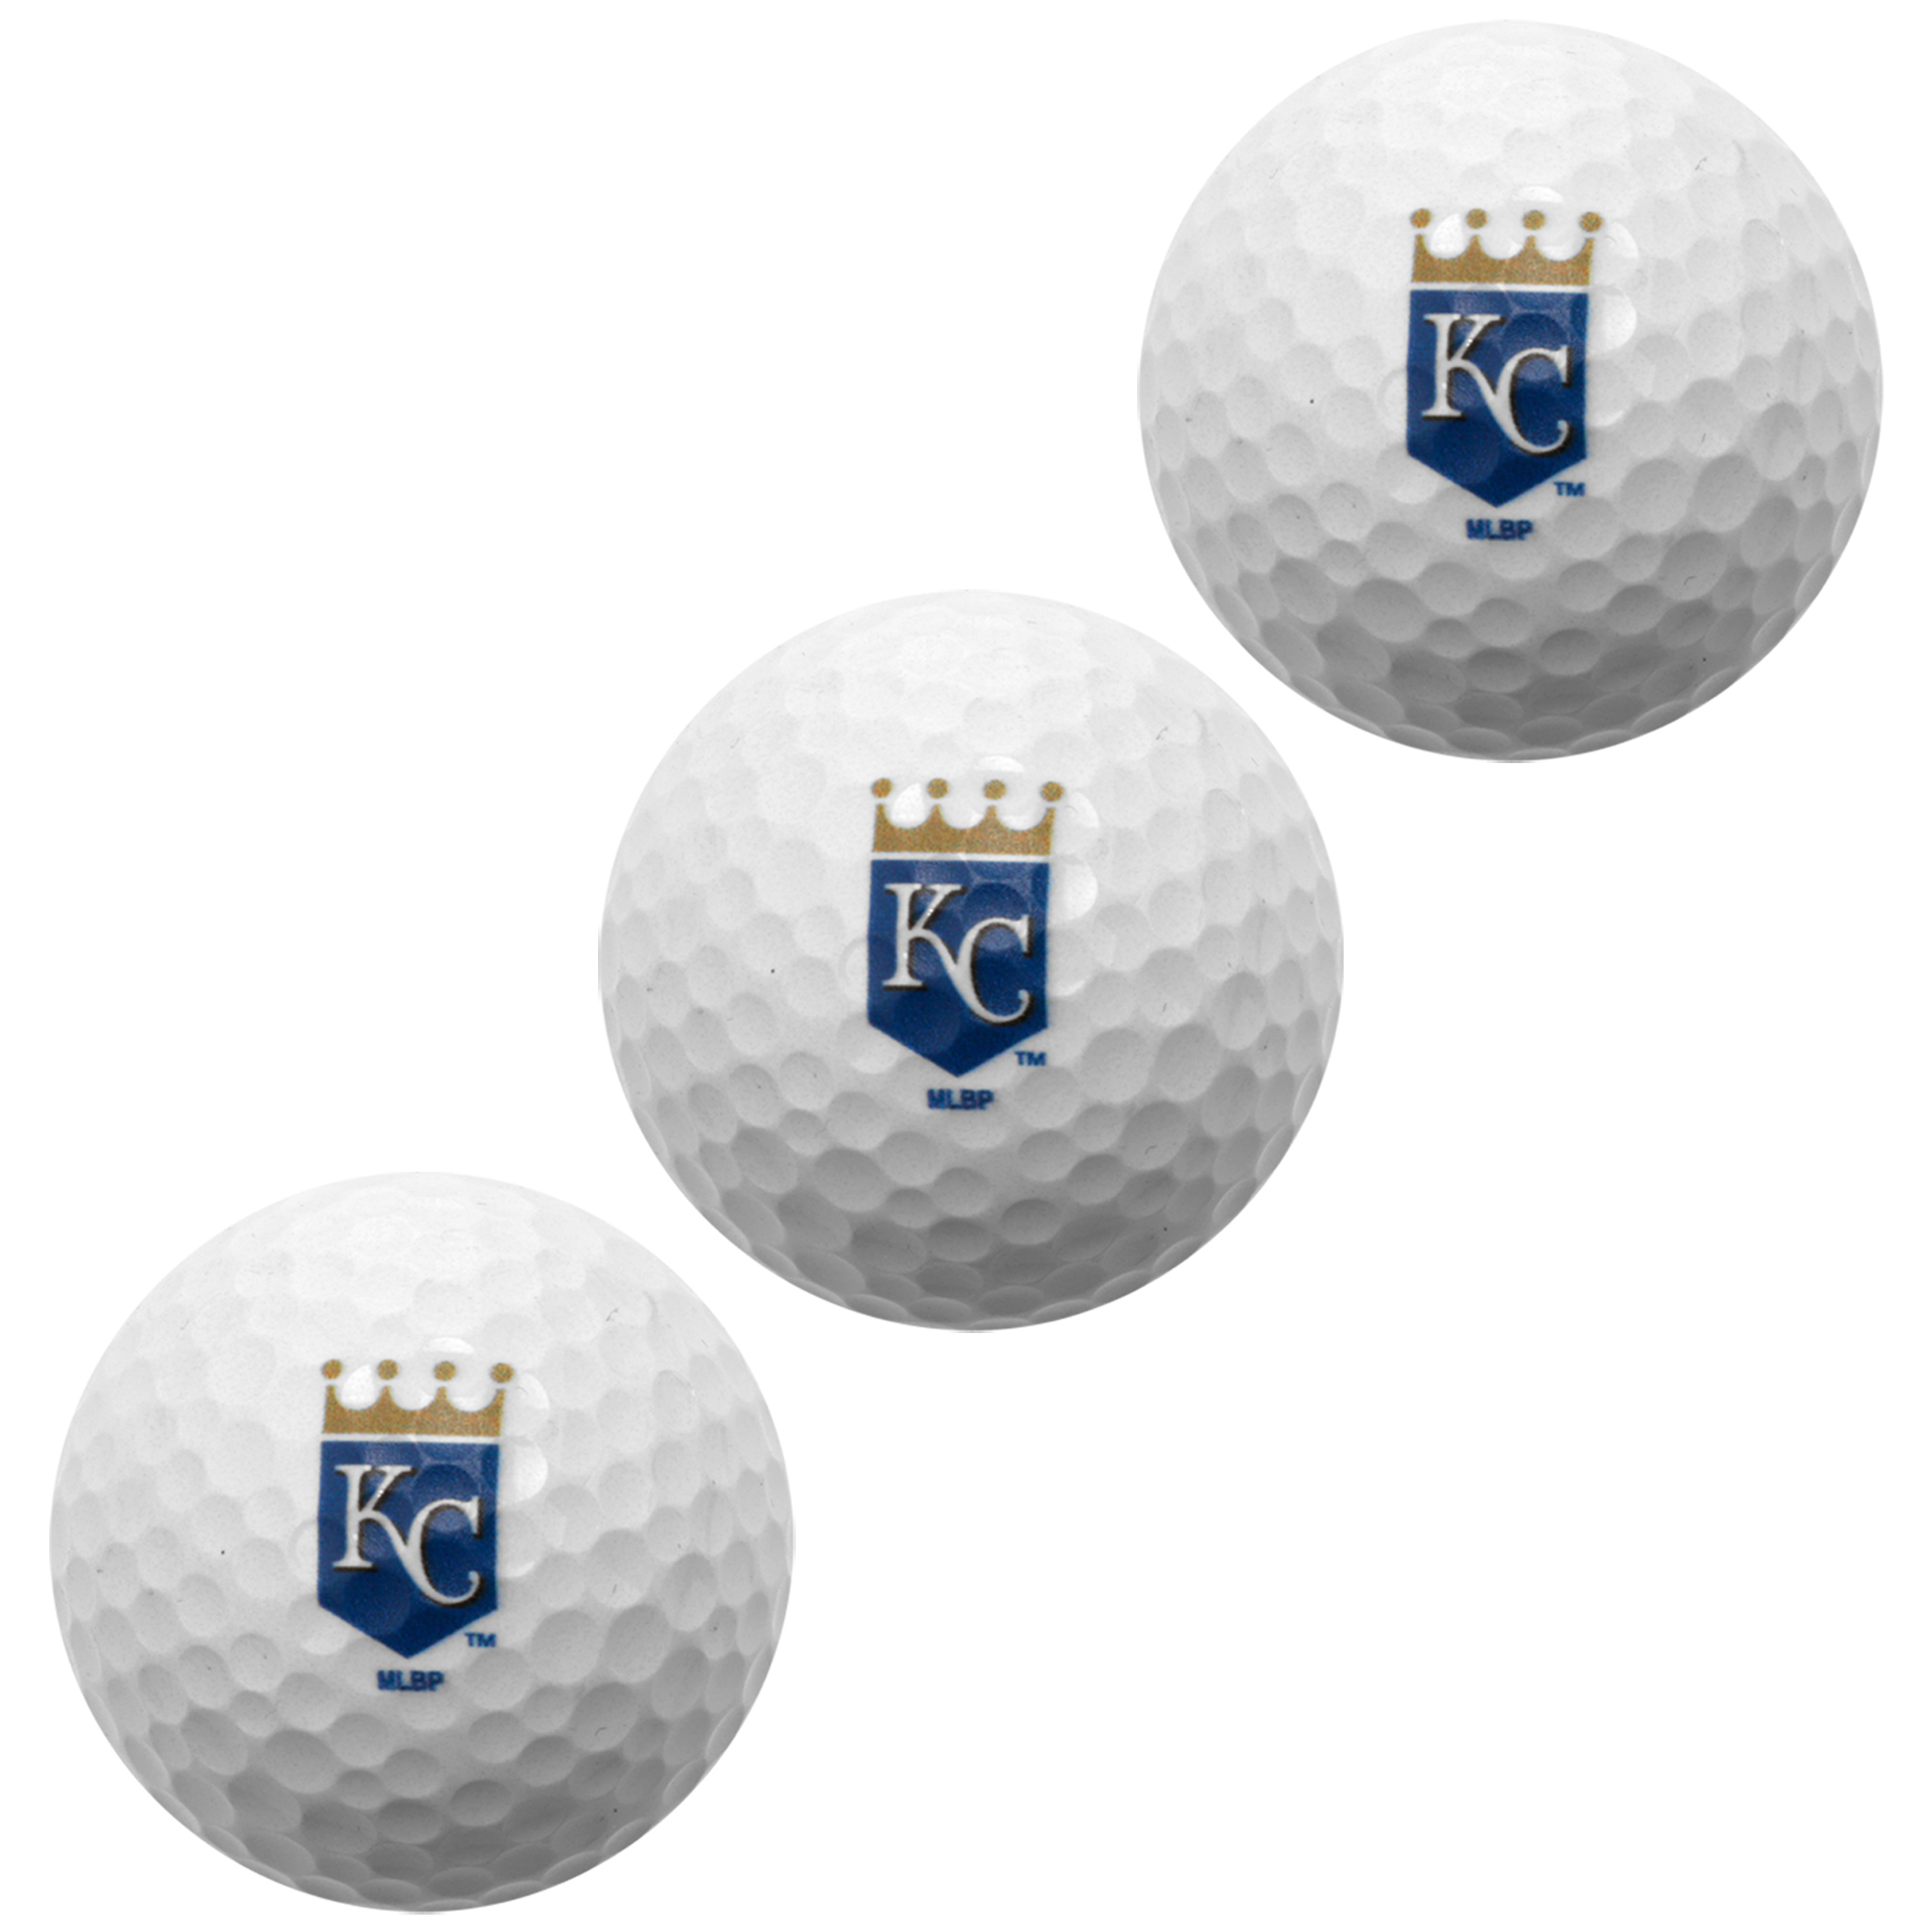 Kansas City Royals Pack of 3 Golf Balls - No Size